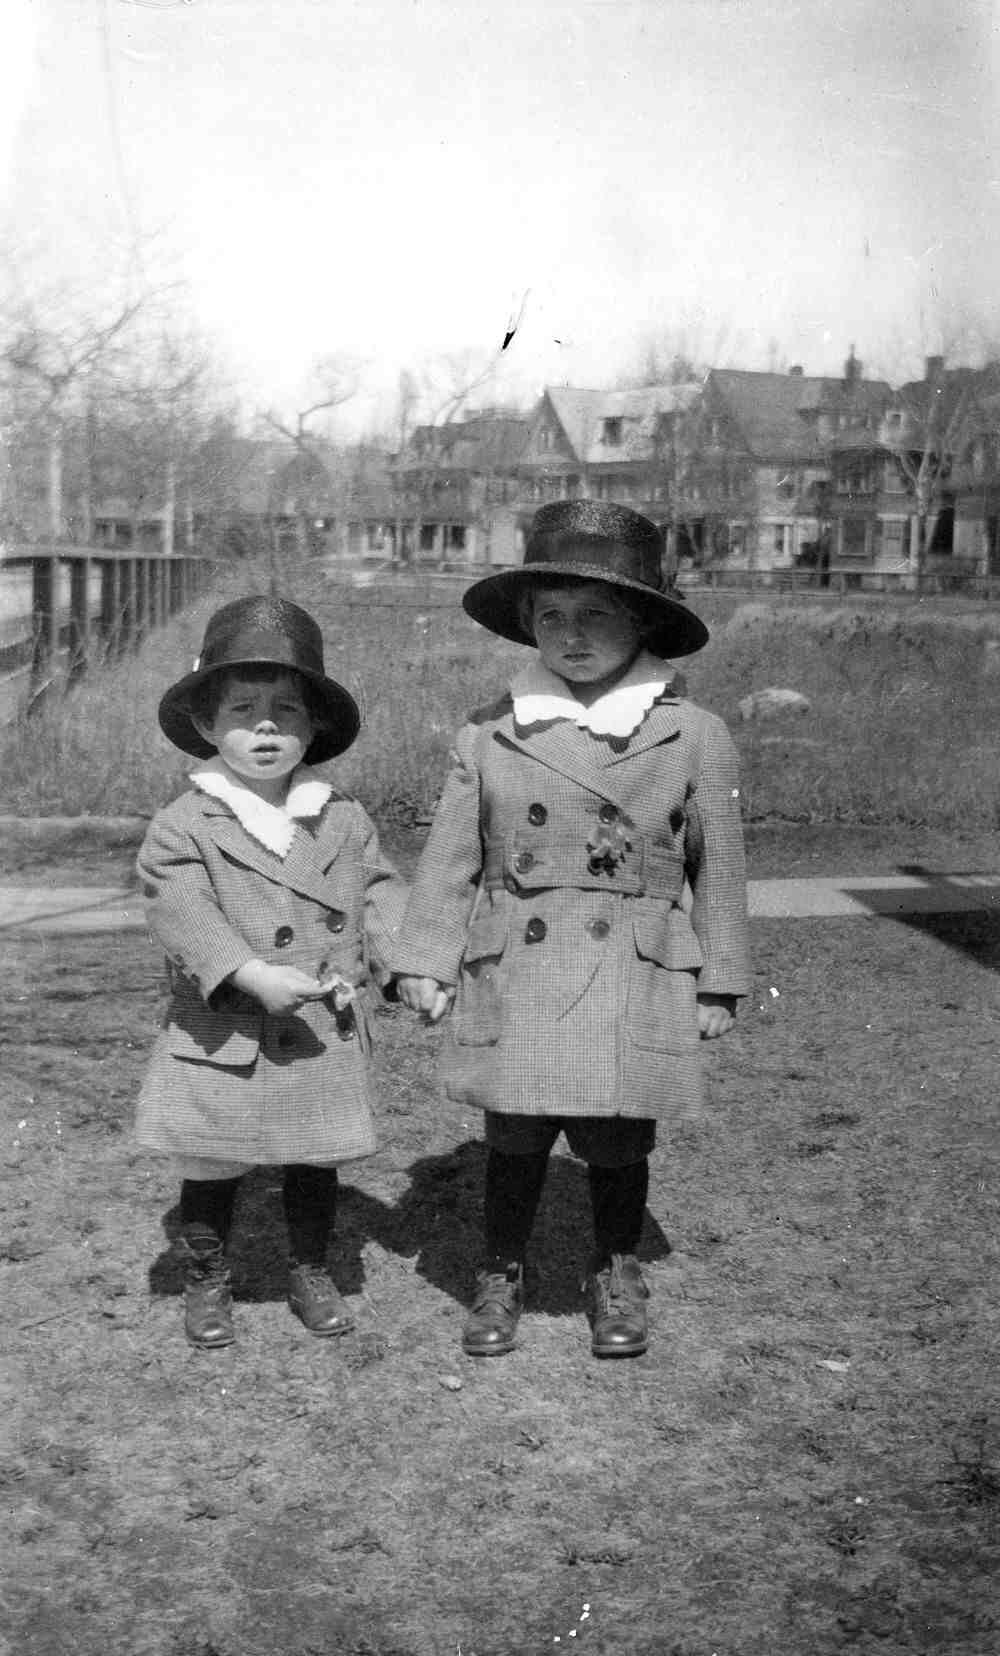 2 year-old John F. Kennedy and his brother Joseph P. Kennedy Jr. -Brookline, Massachusetts, ca. 1919 http://t.co/rbOdaeC9ti